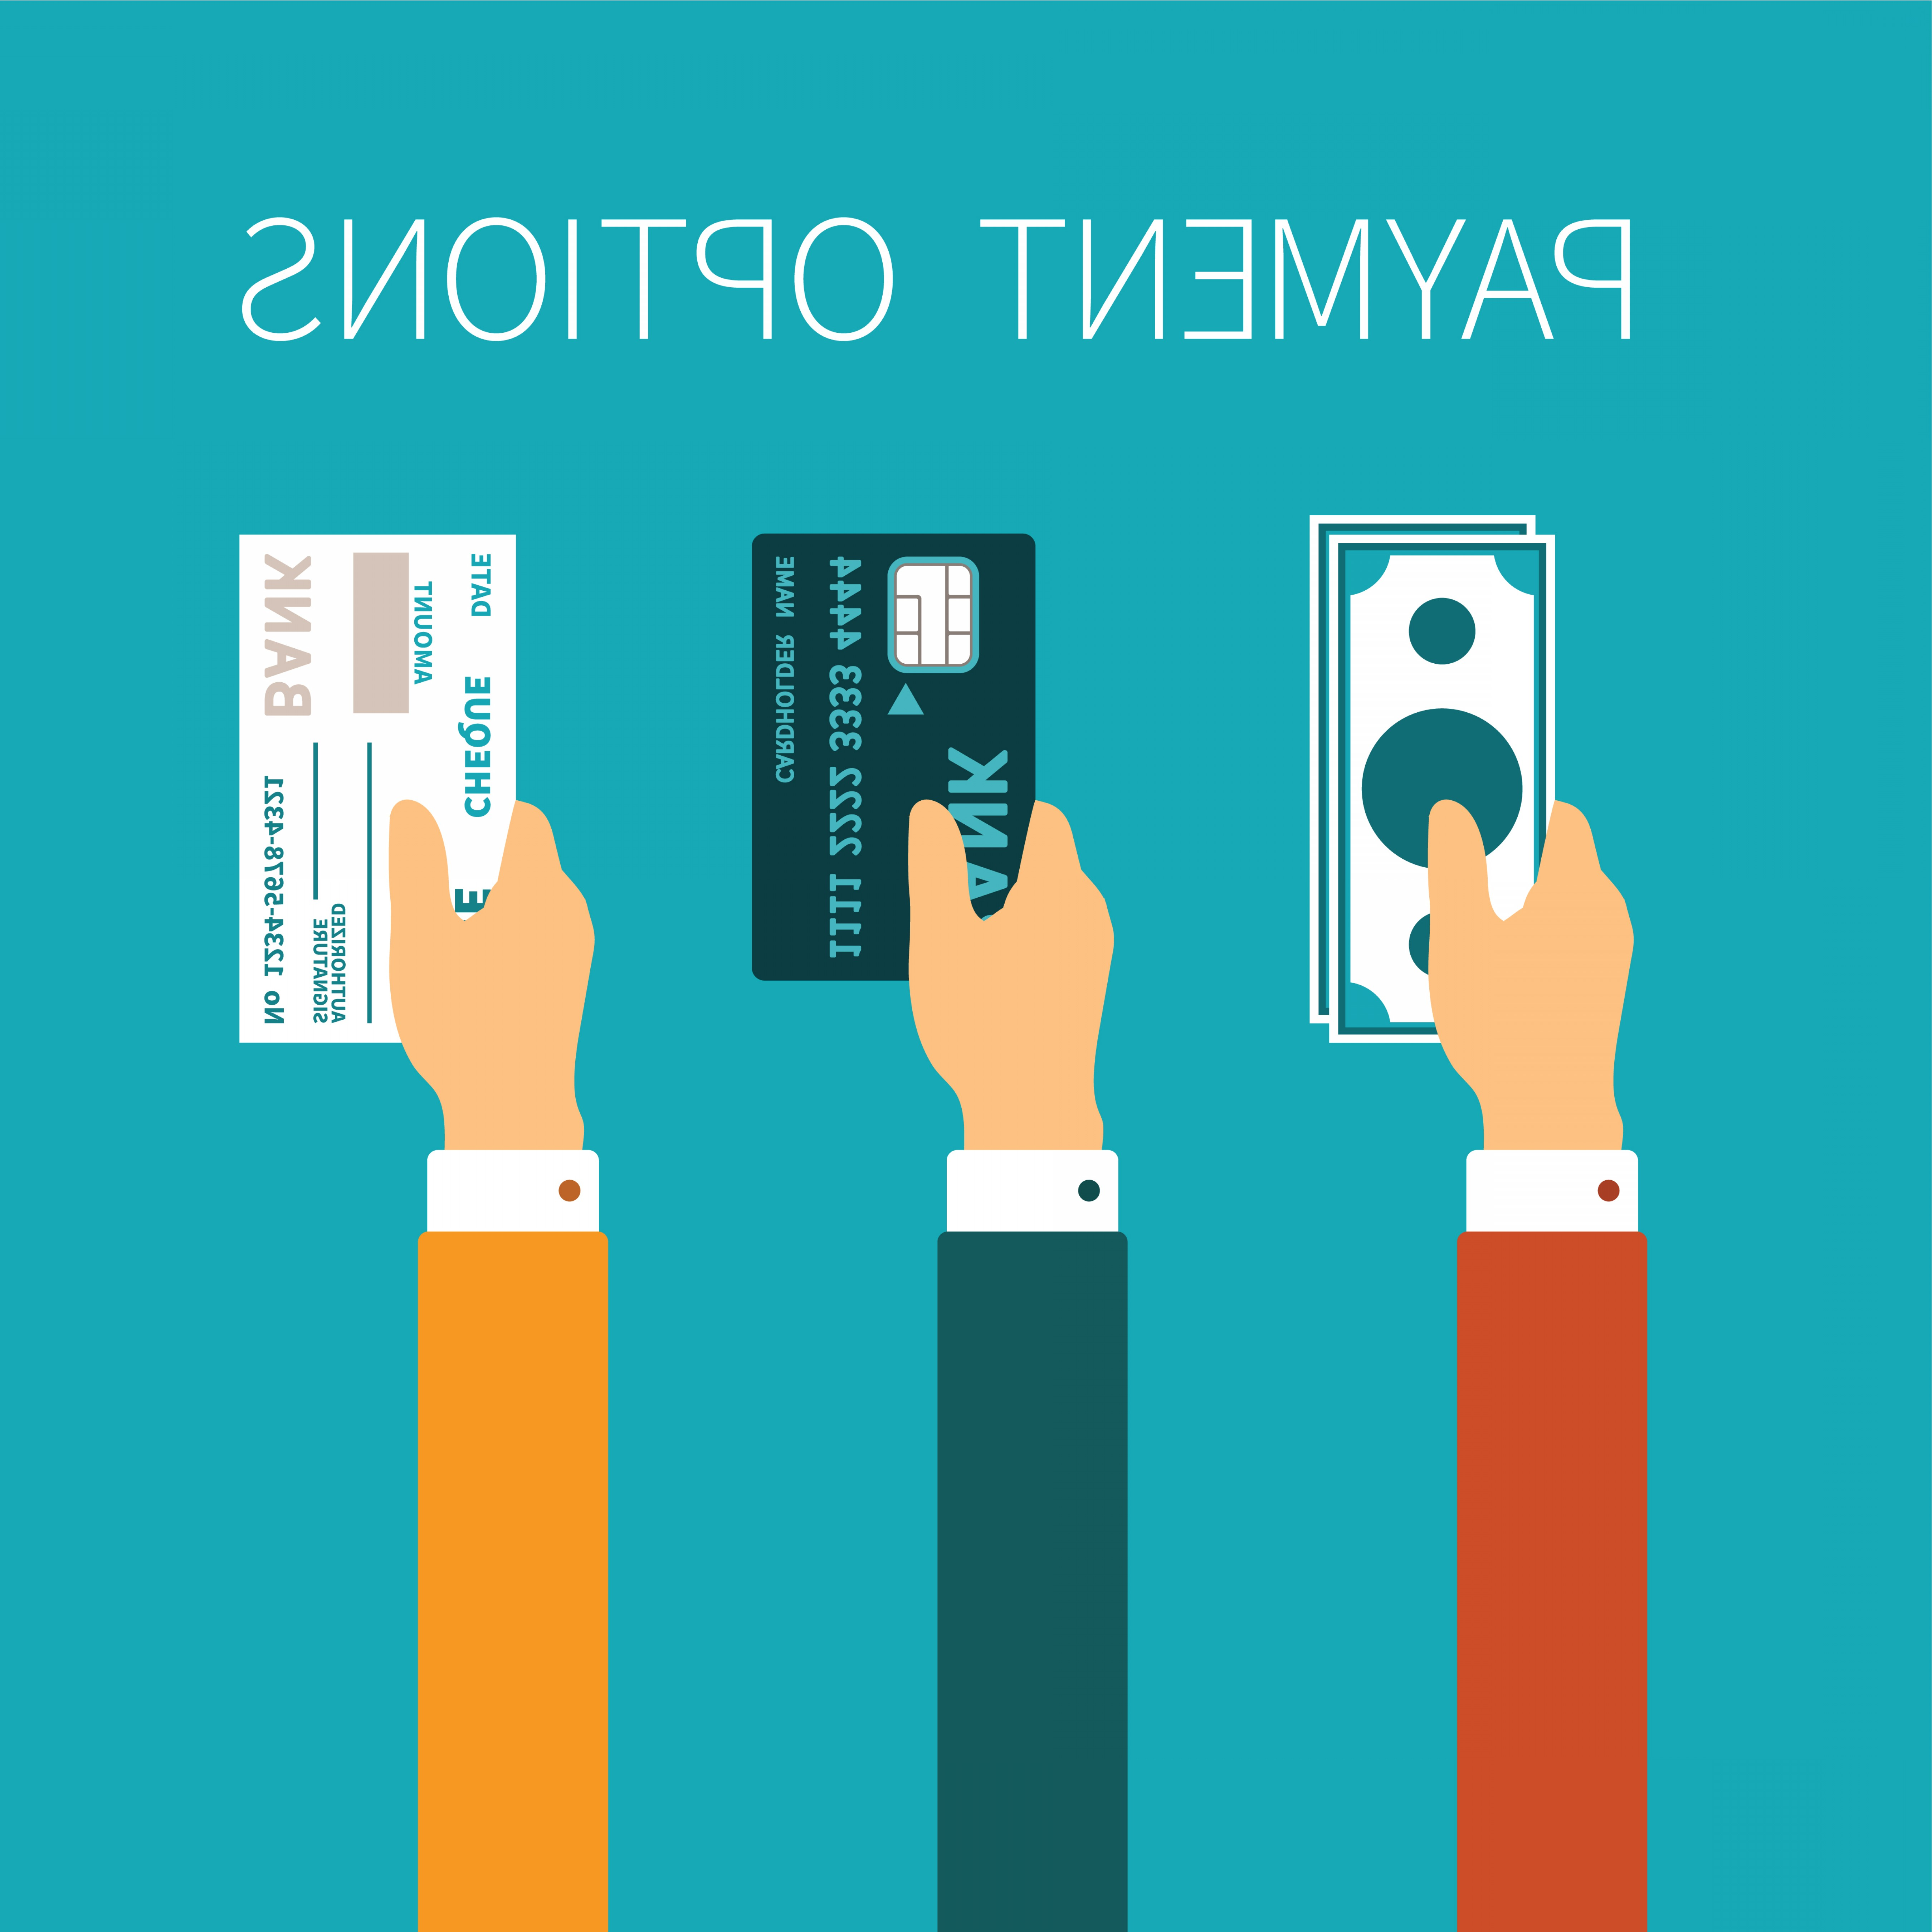 Vector One Debit Check: Credit Card Use Downward Spiral E Wallets Next Says Worldpay